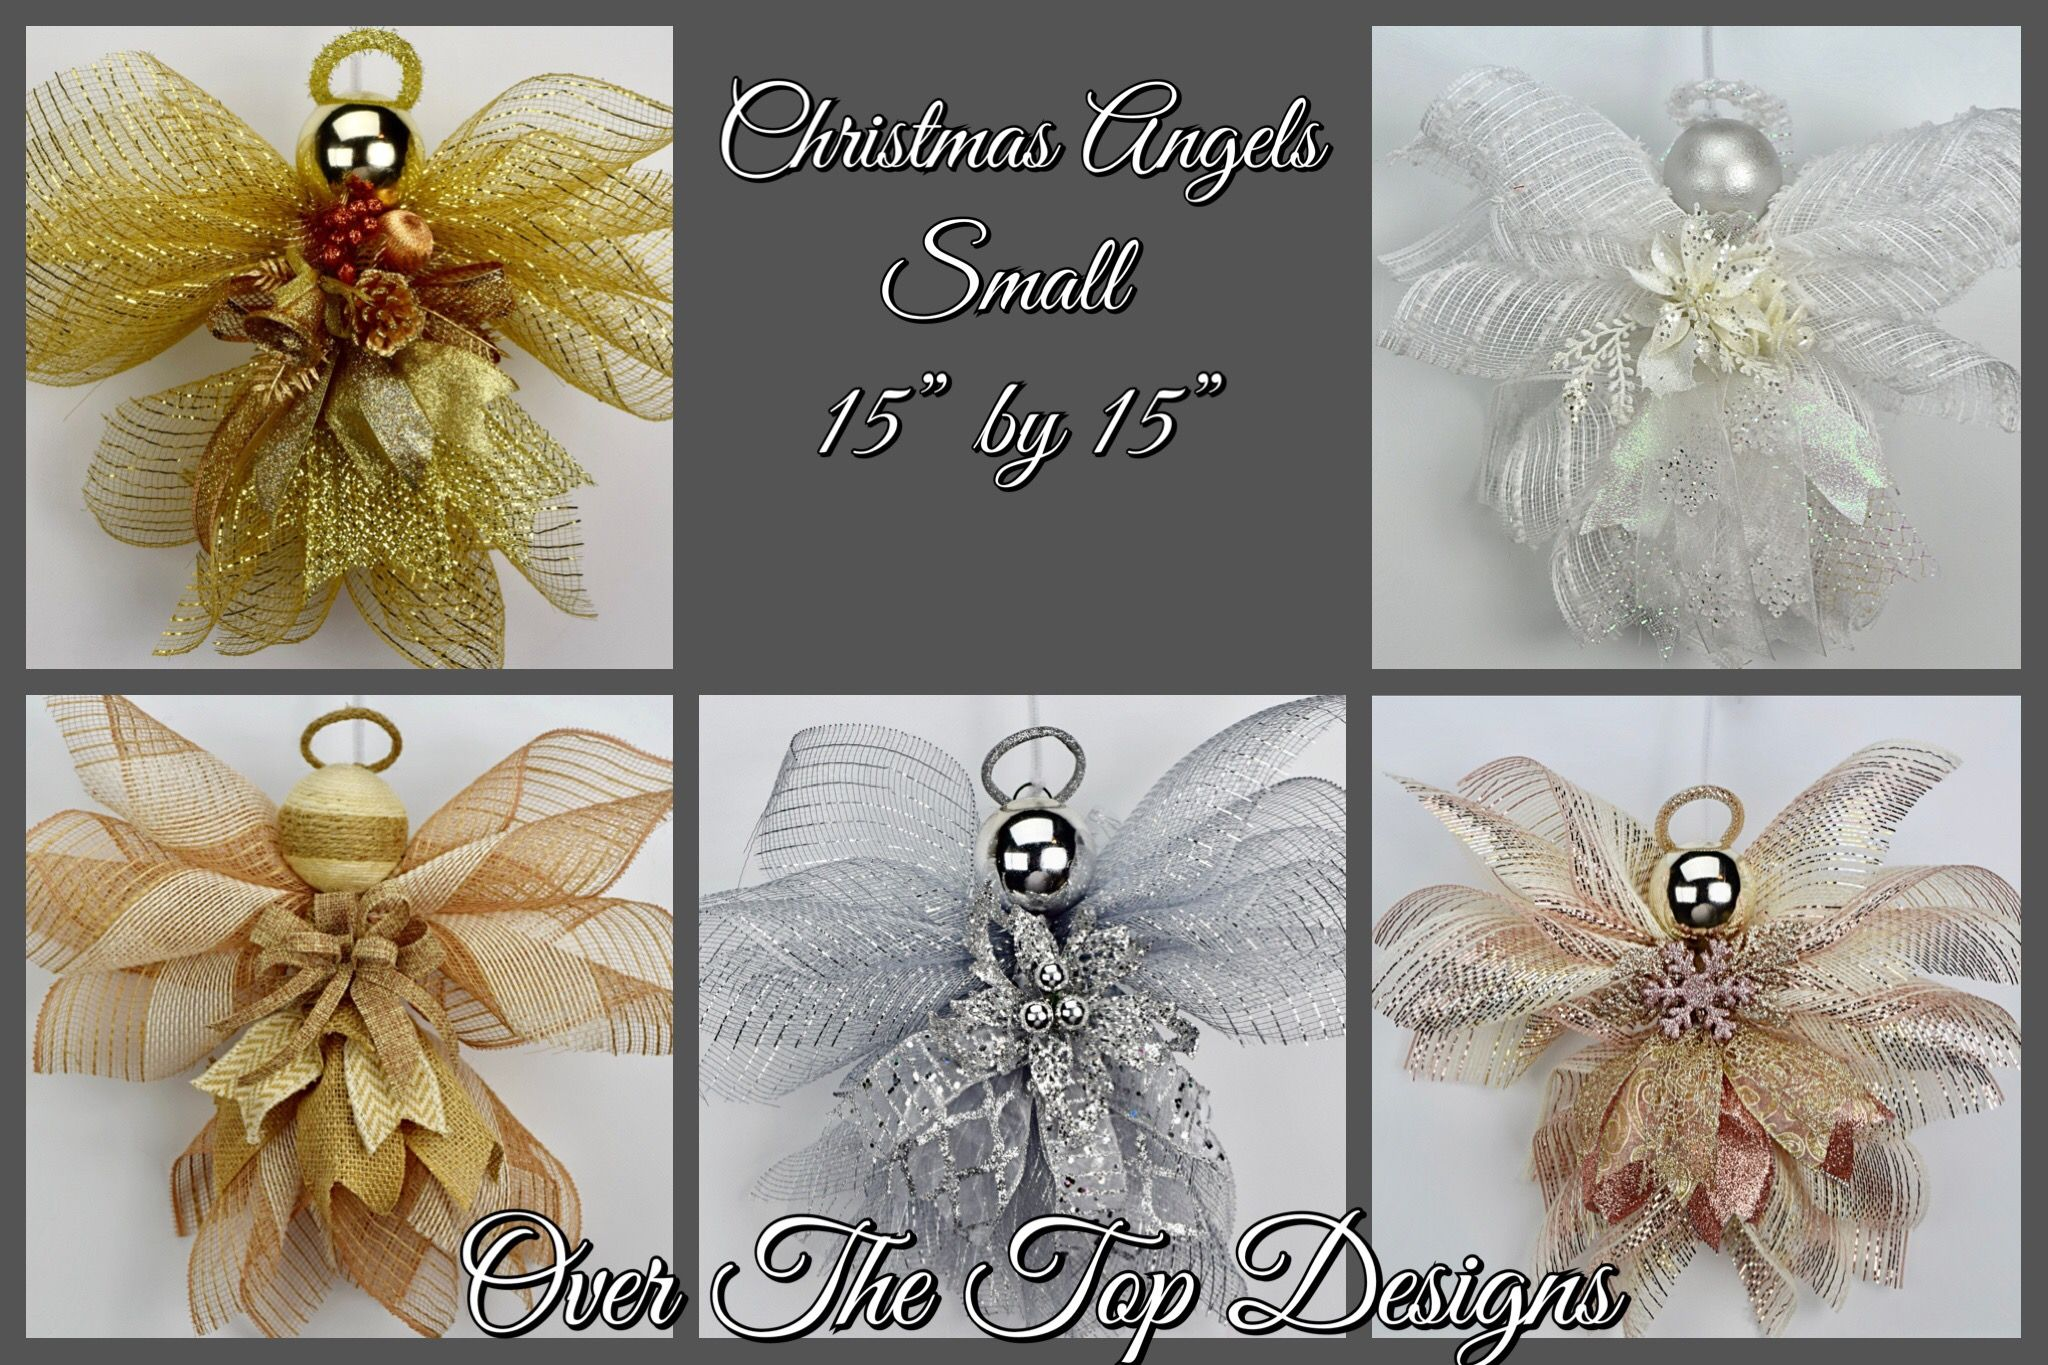 Small Christmas Angels In Silver, Burlap, Gold, White, And Rose